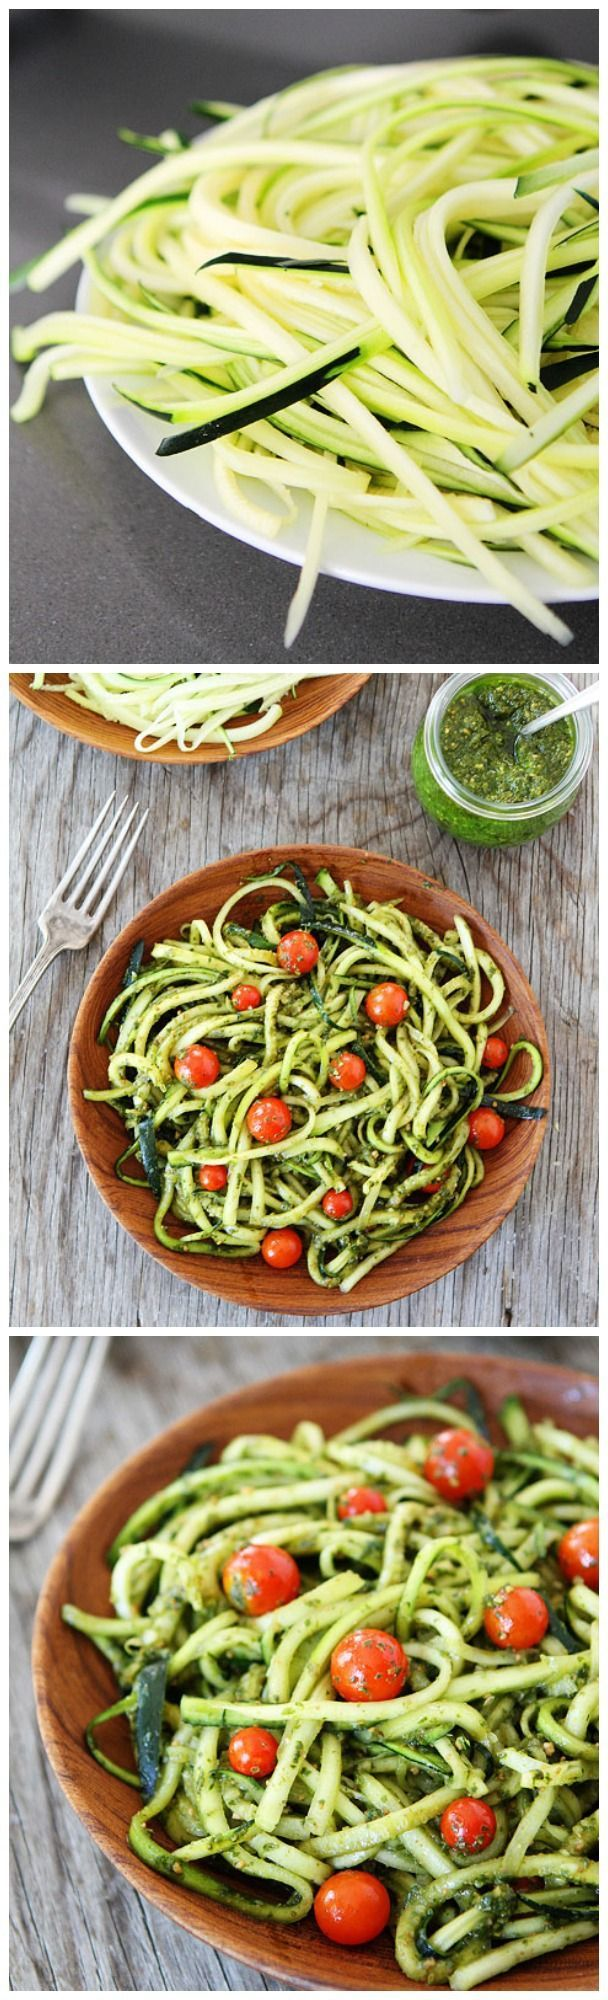 Zucchini Noodles with Pesto ...... Turn abundant zucchini into noodles for a fun summer meal. Zucchini Noodles with Pesto is a simple and healthy dish that the entire family will love!....... Quick, healthy and yum!   .......Find the recipe here.